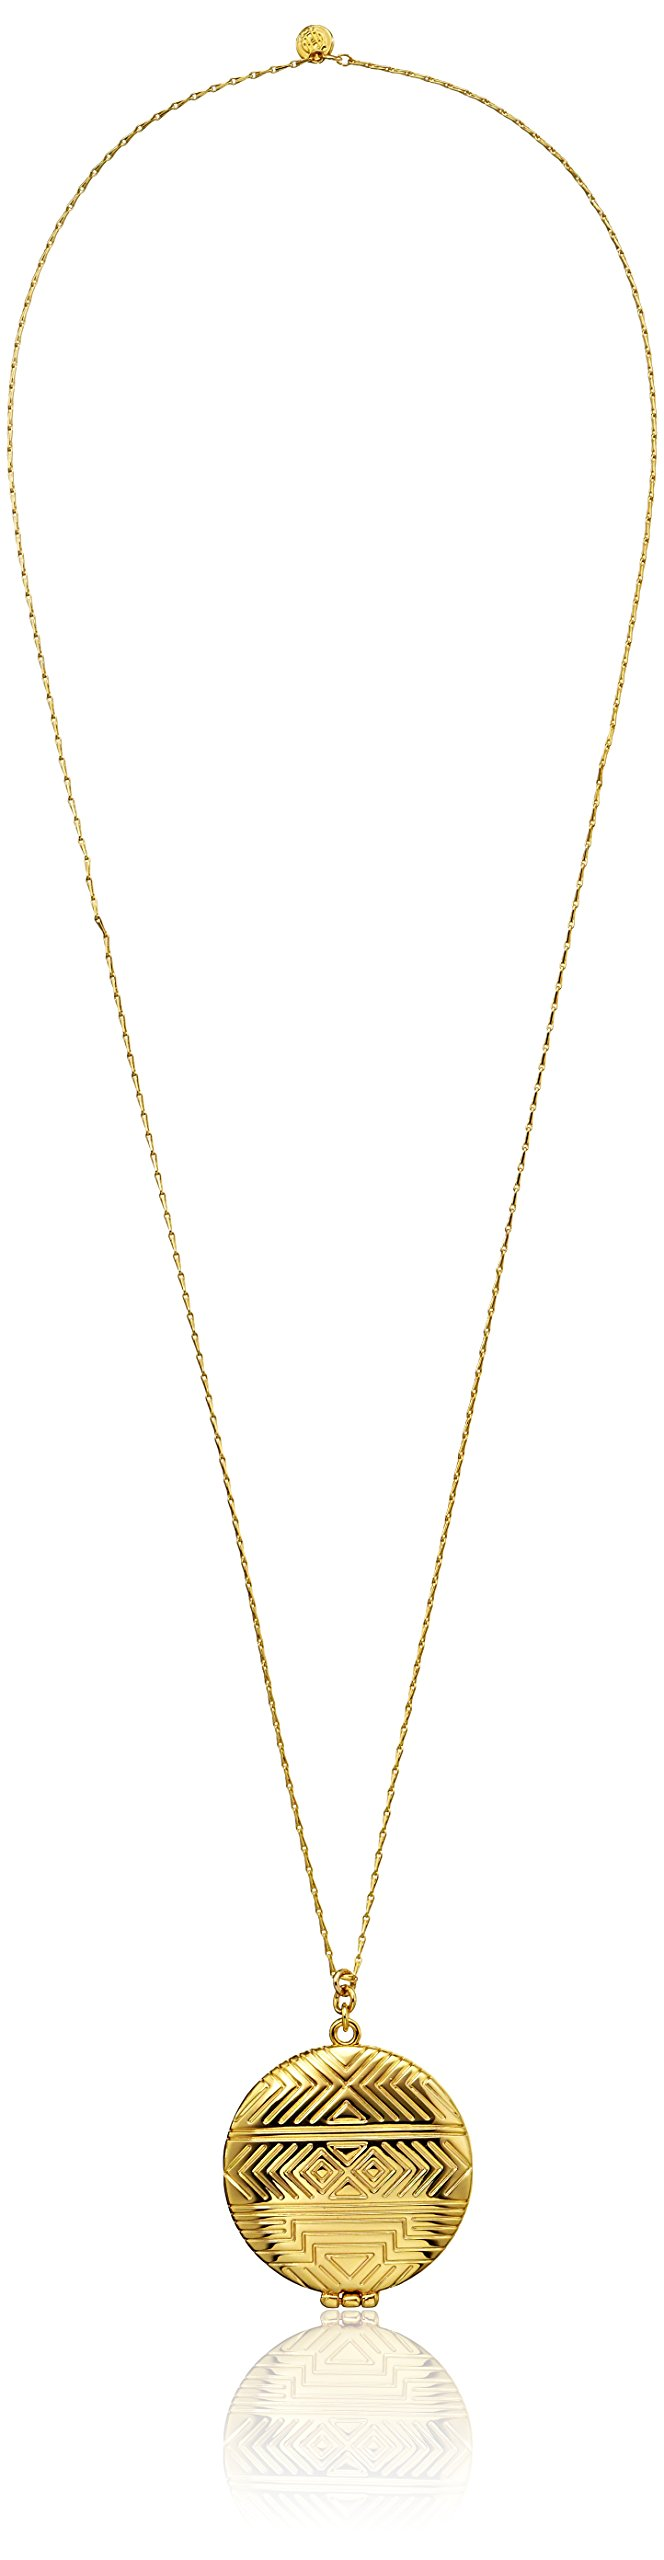 House of Harlow 1960 14k Yellow Gold-Plated Medallion Locket Necklace, 28''